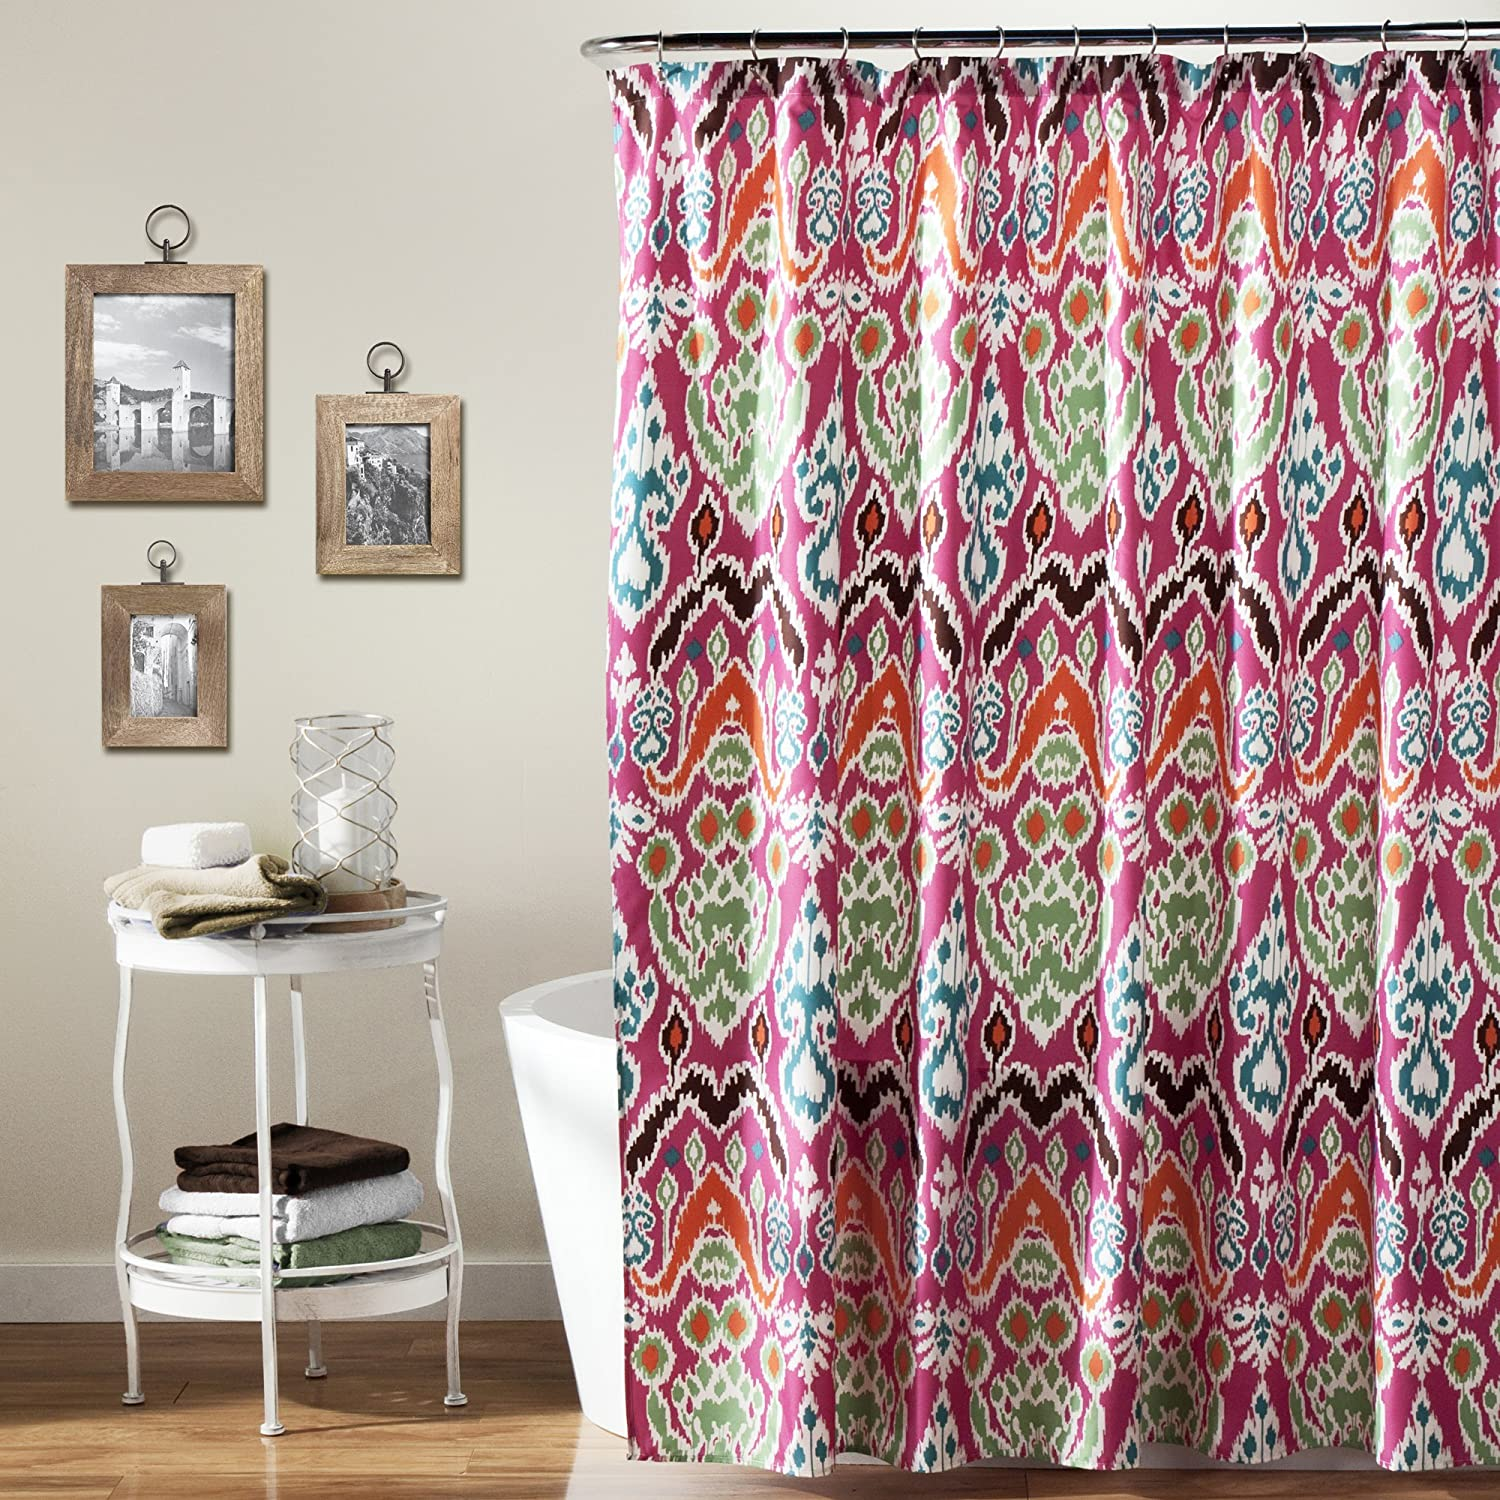 of impressive decorative nfl flanges bath full setsdecorative clips shower and curtain with concept photos curtains size towel valance nytexas orleans new saints rod collection designerr rods